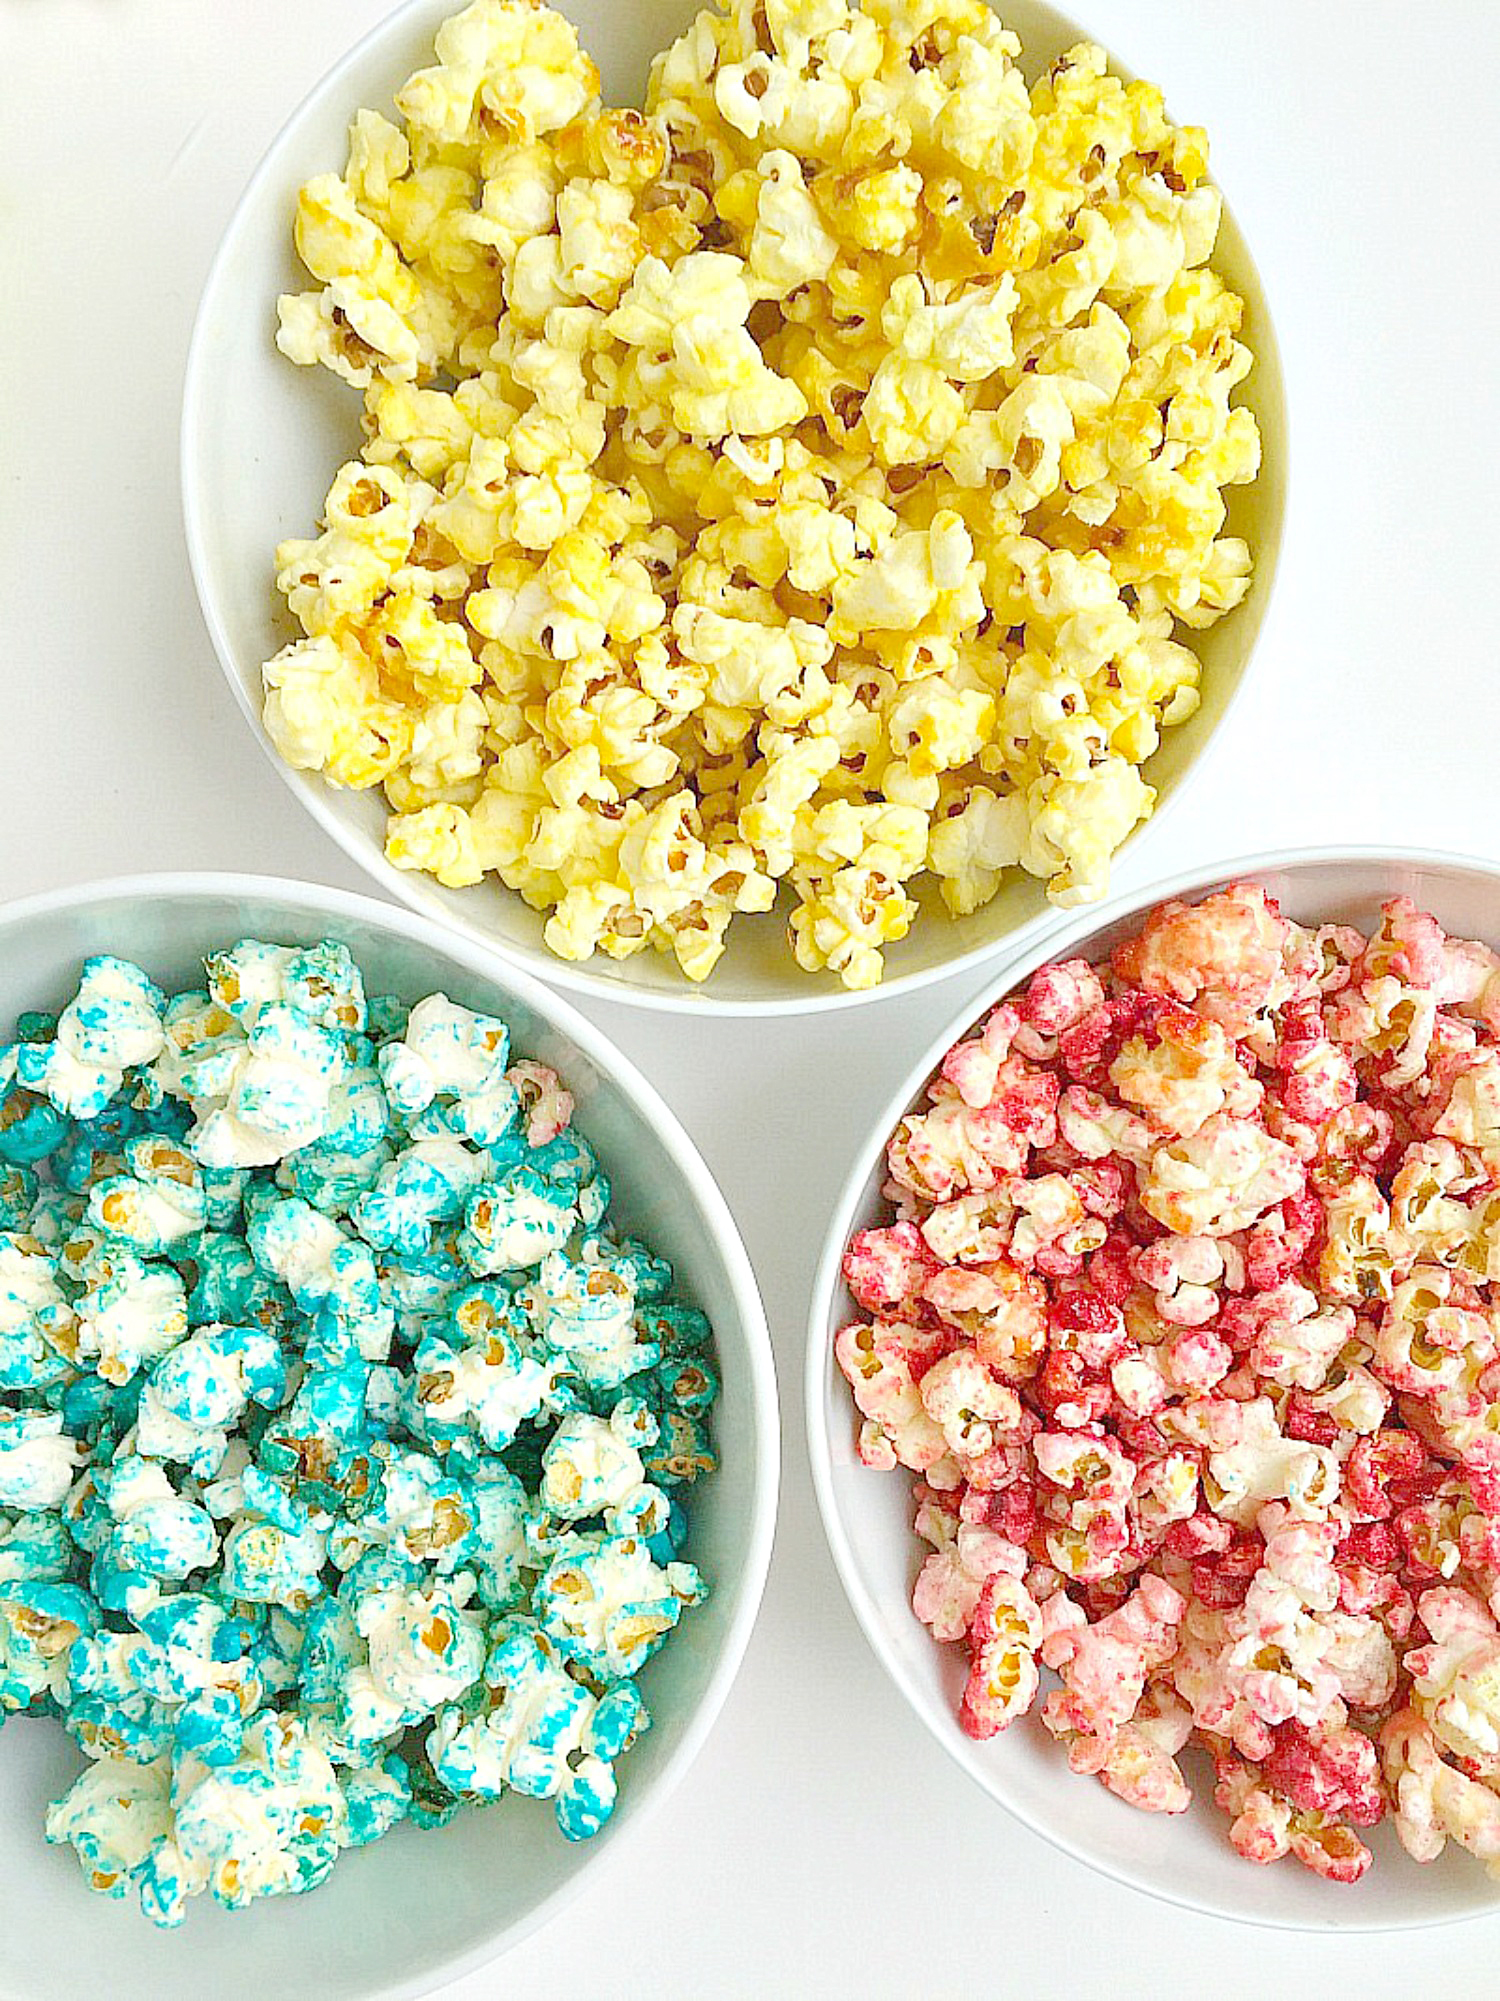 3 white bowls filled with a different colour of popcorn,